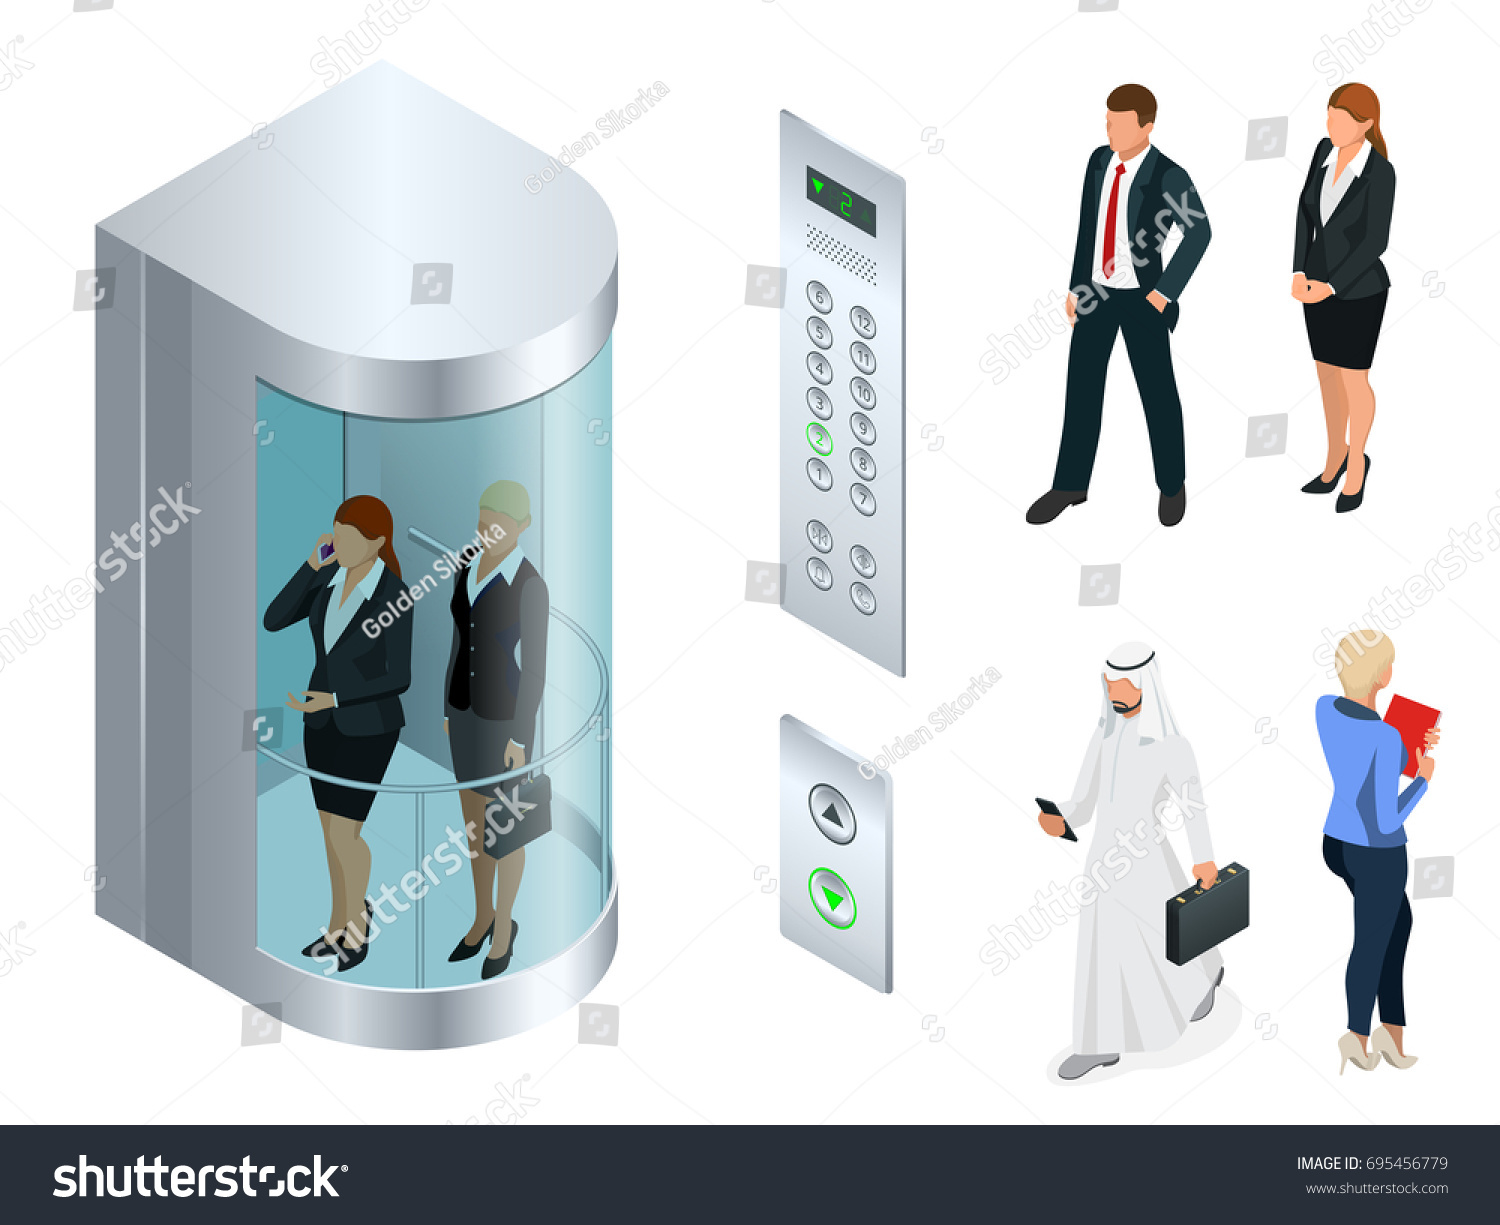 people inside elevator. isometric vector design of the elevator with people inside and button panel. realistic empty